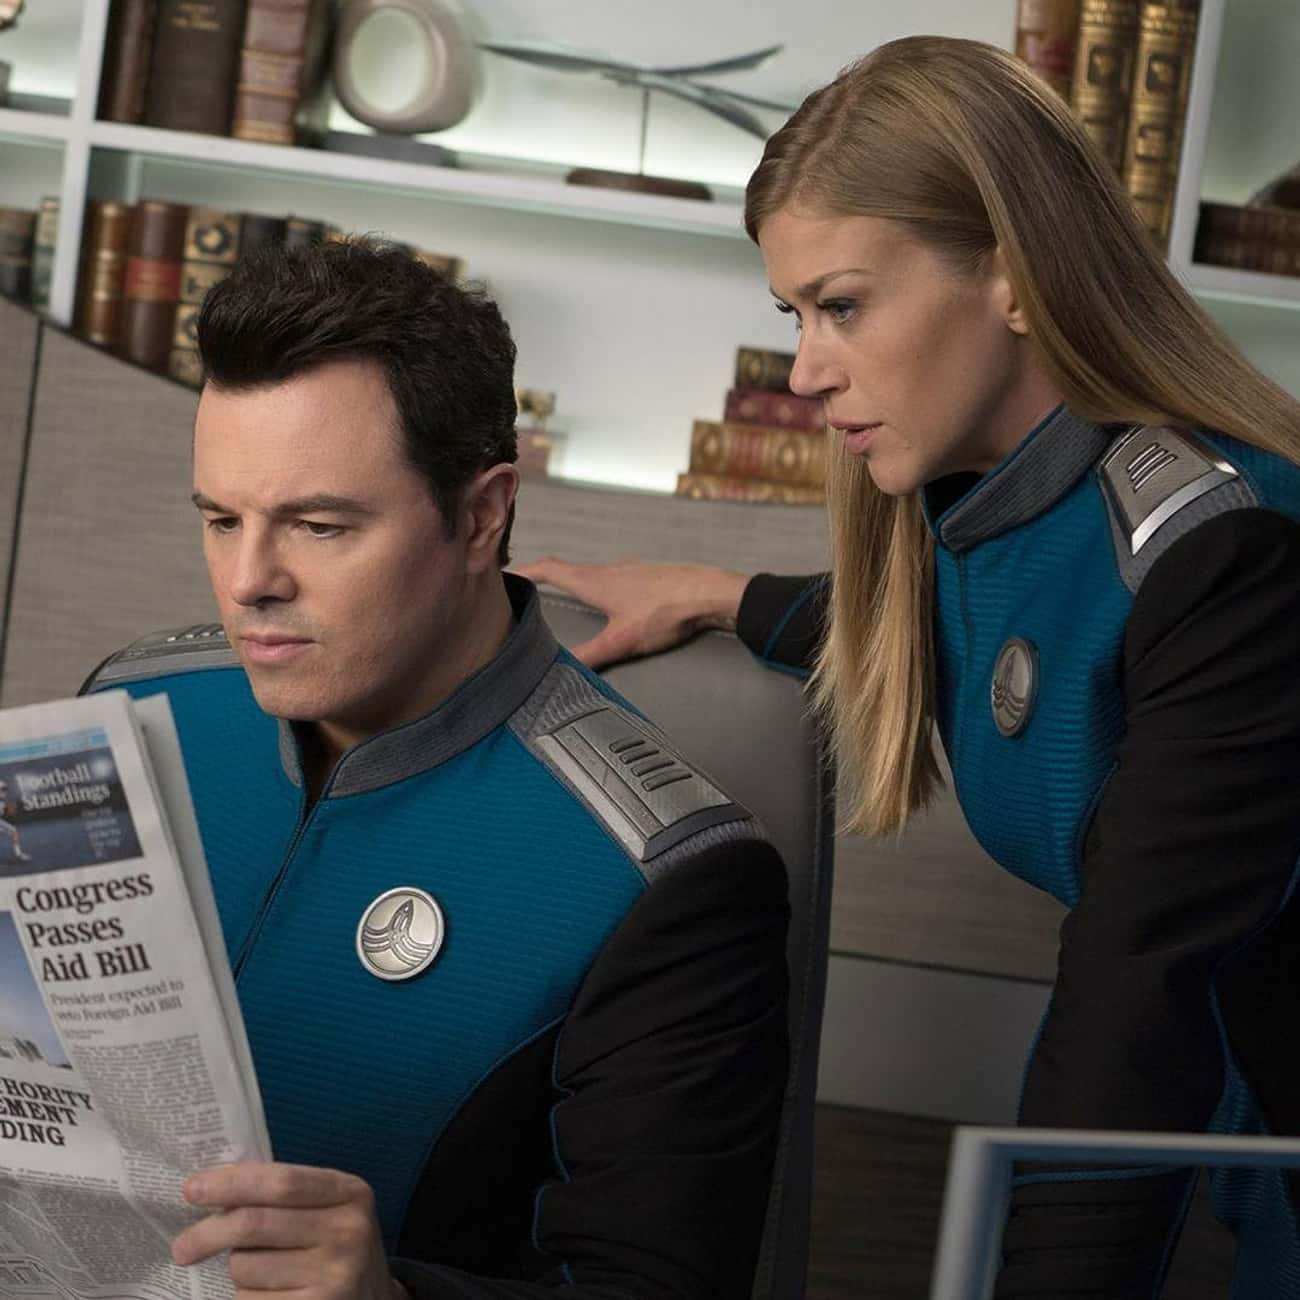 Lasting Impressions is listed (or ranked) 3 on the list The Best Episodes of 'The Orville'